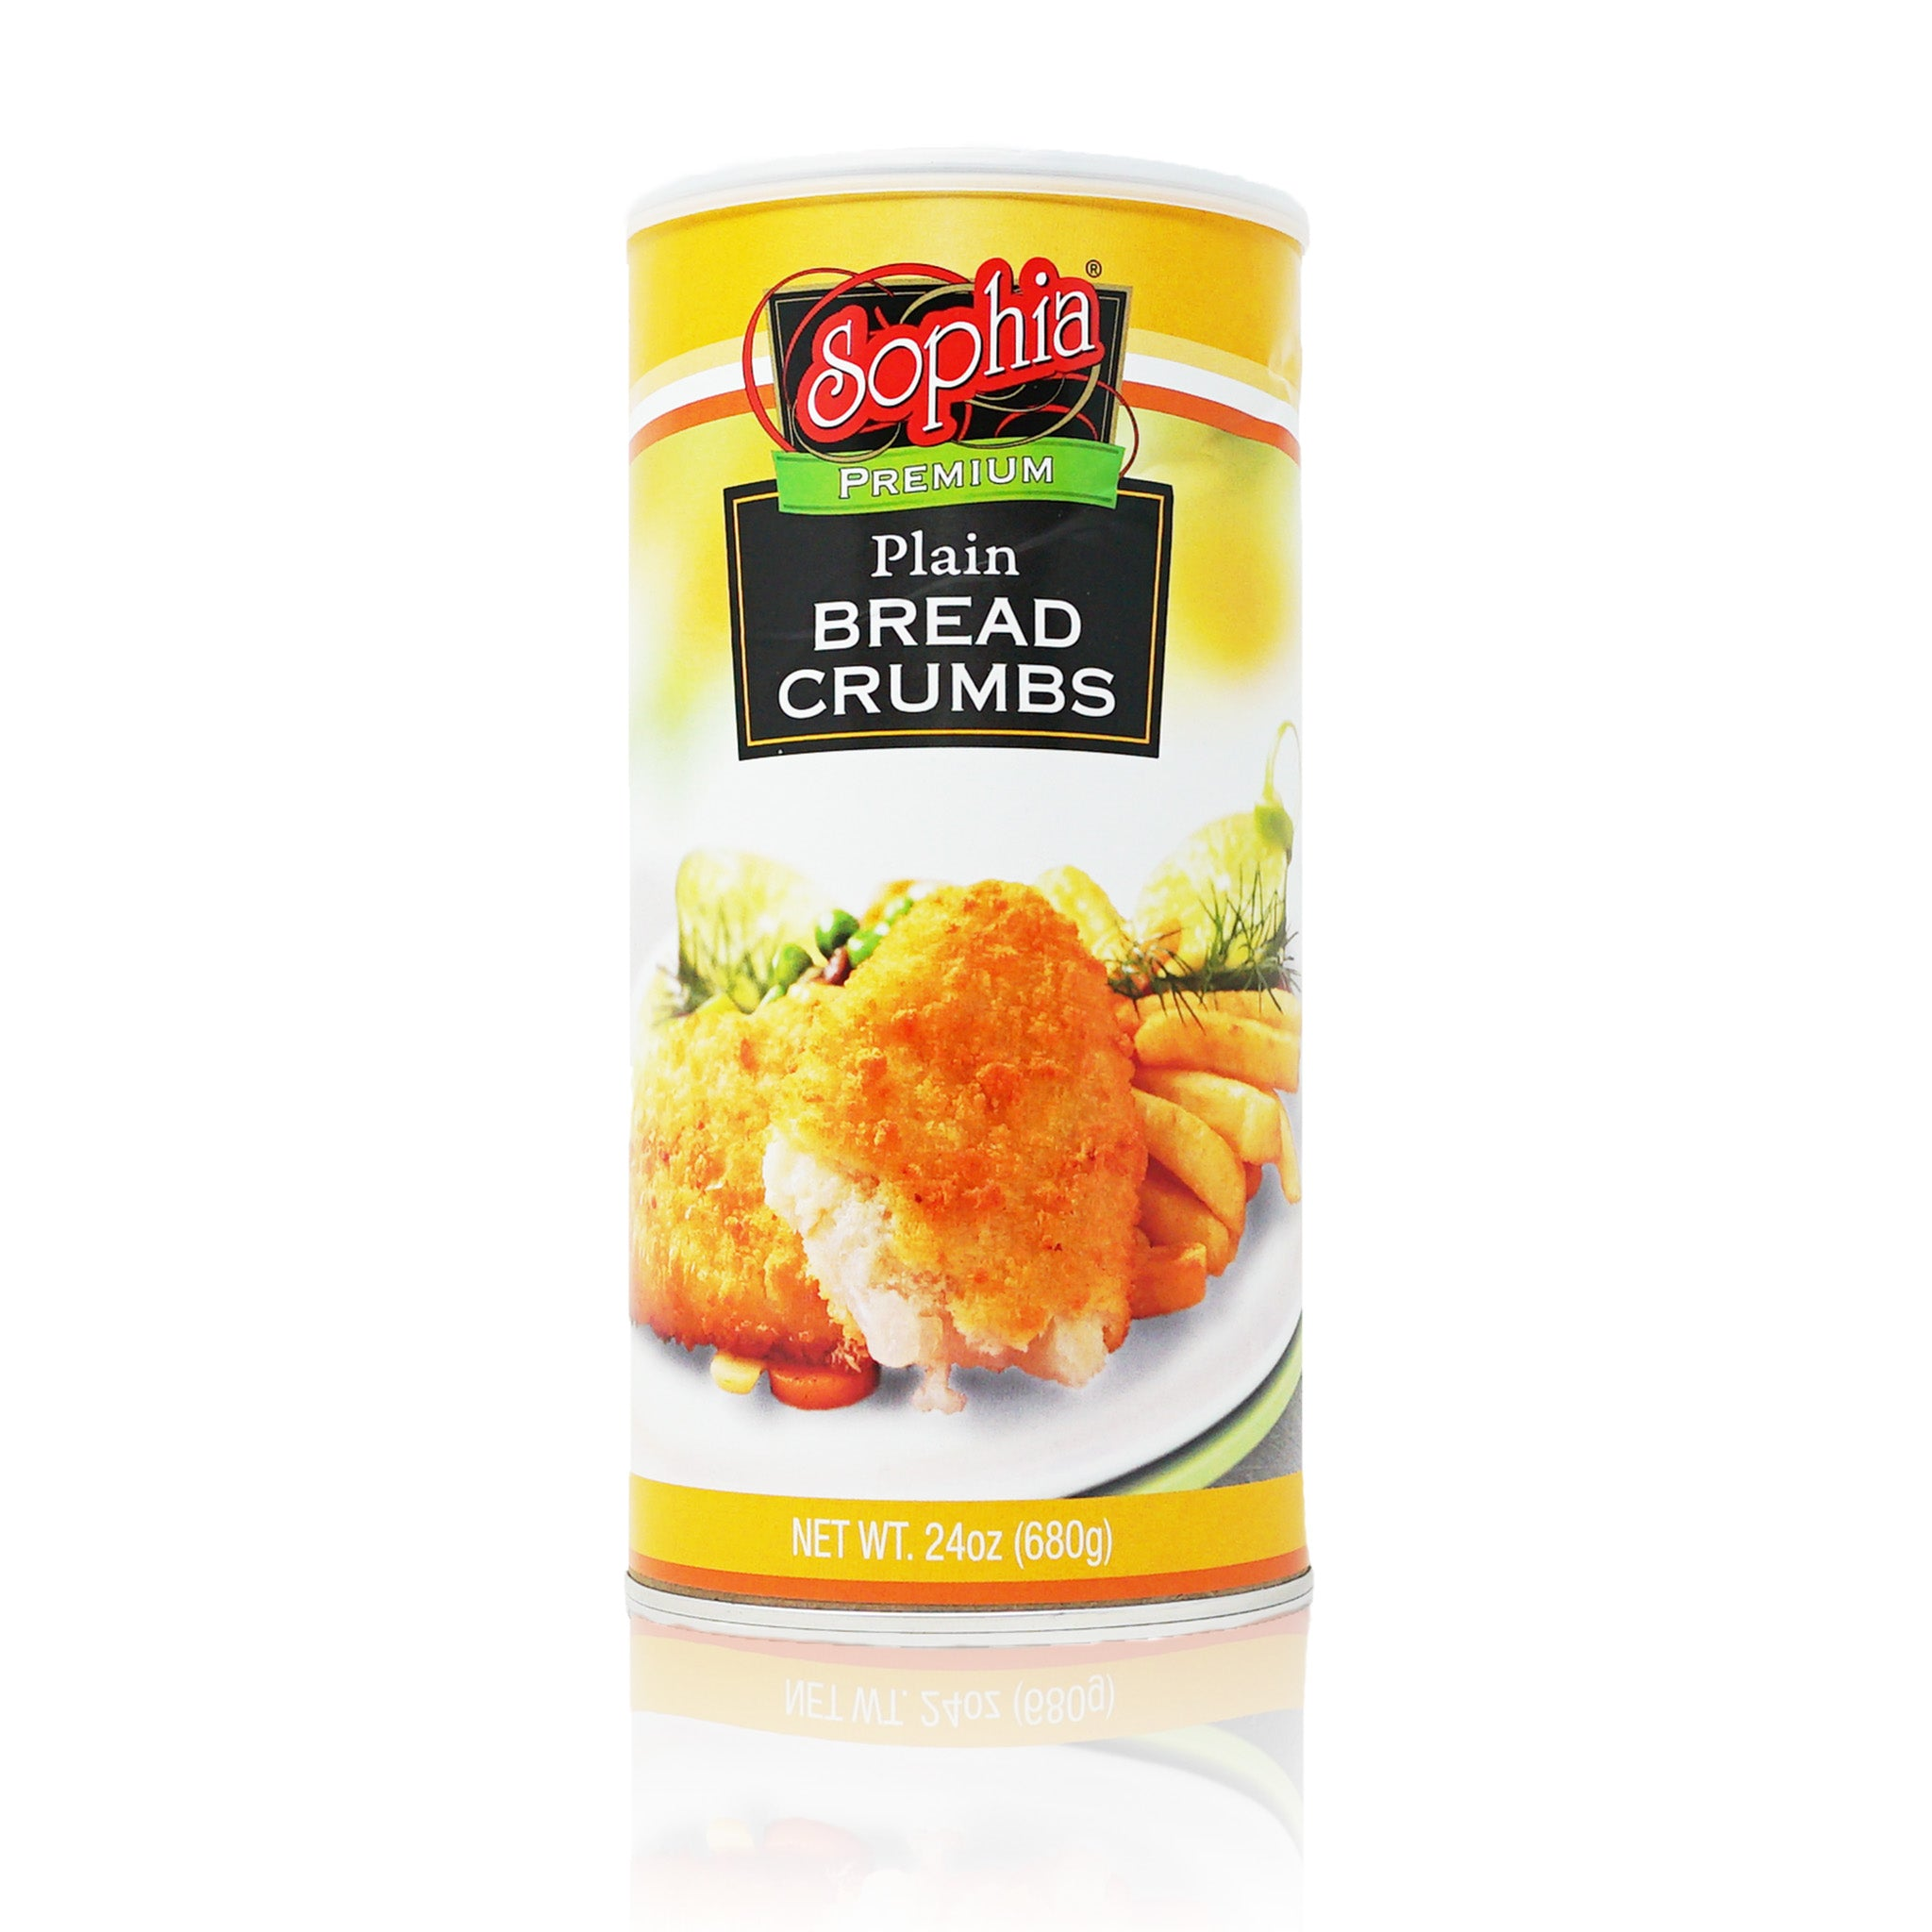 Sophia Bread Crumbs - Plain